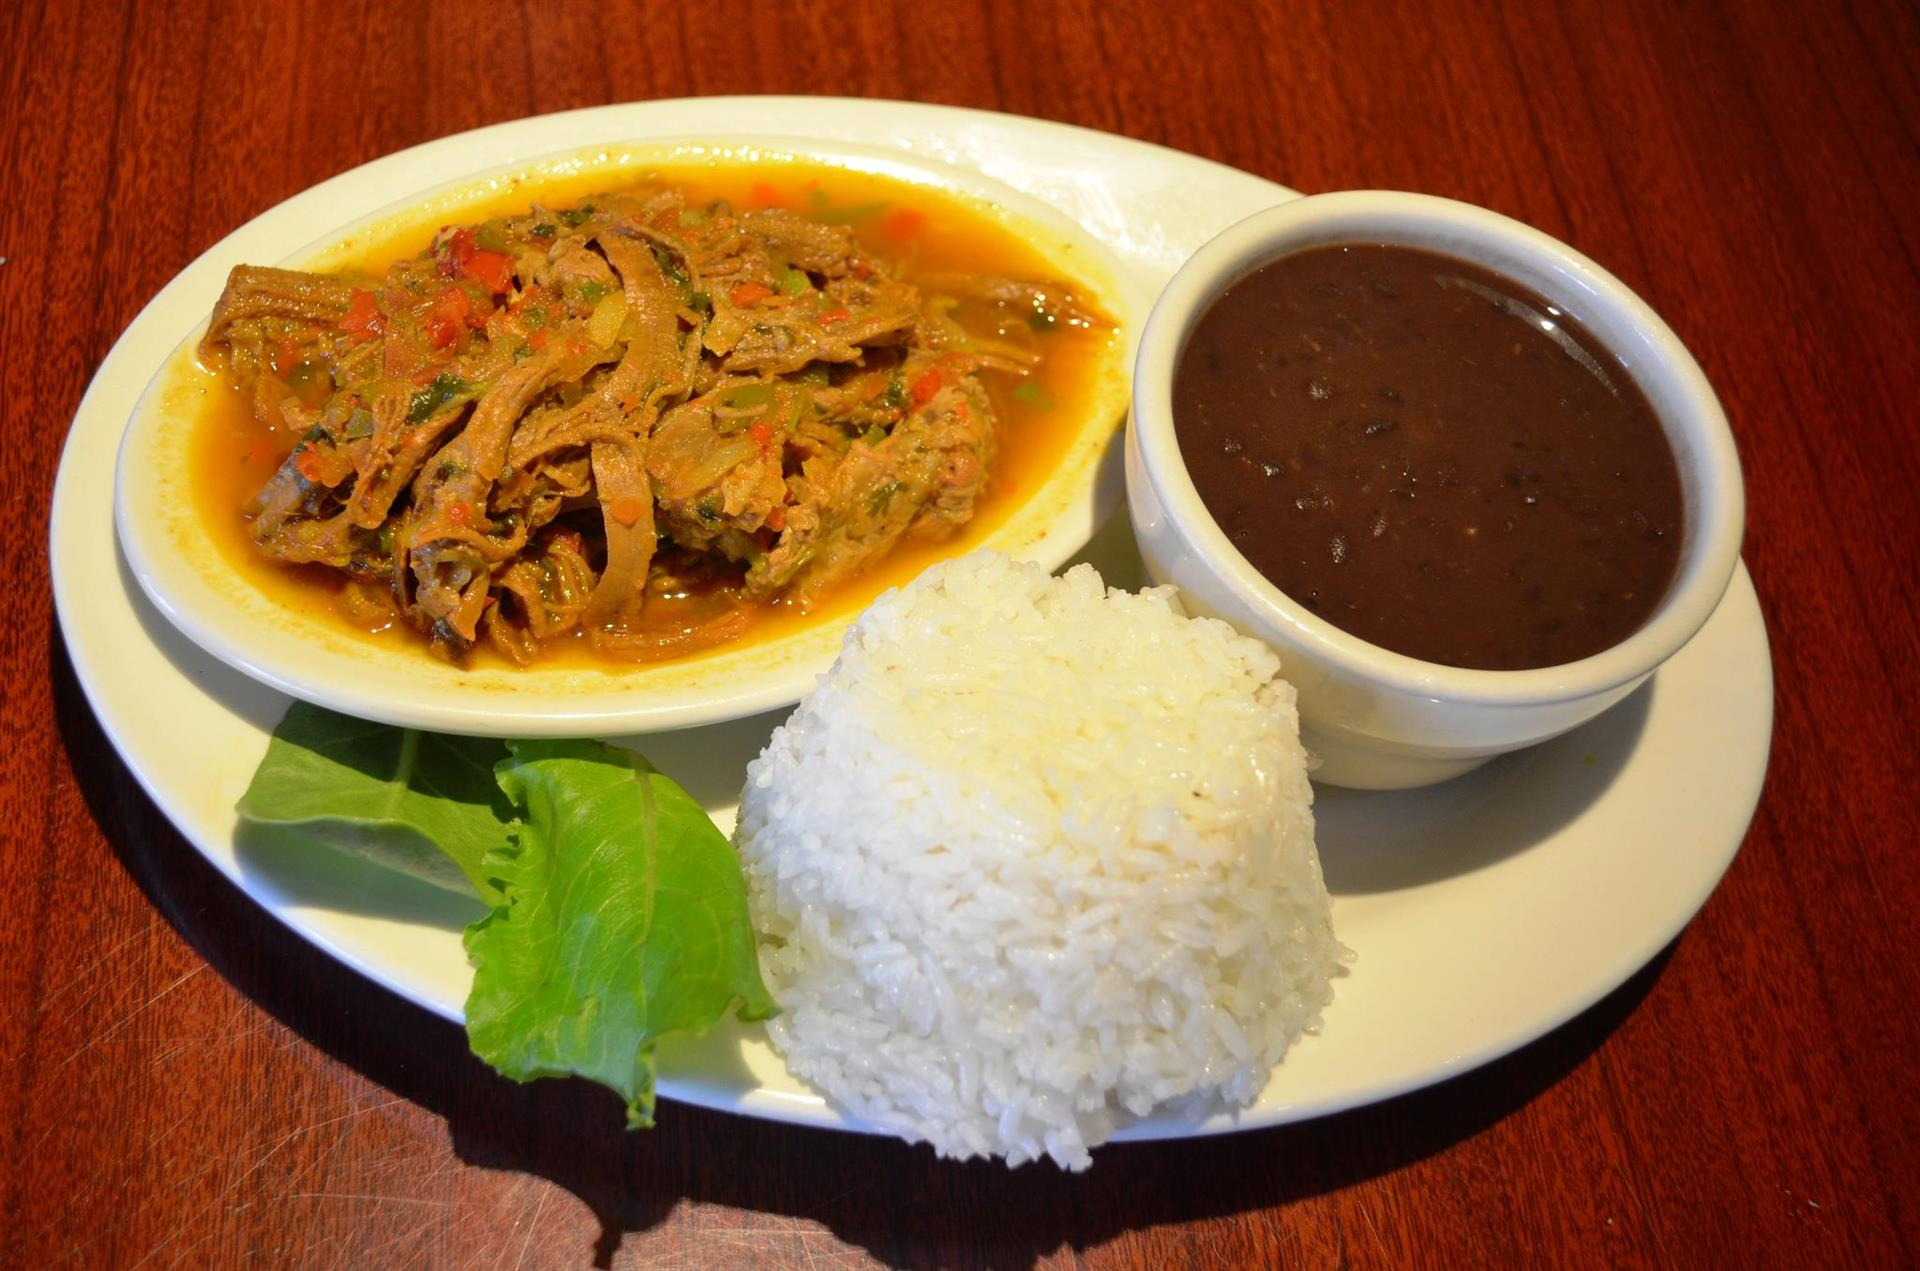 Frijolada: Red beans with shredded beef, pork belly, sweet plantains, corn & avocado. Served with white rice, arepa, & creole sauce.